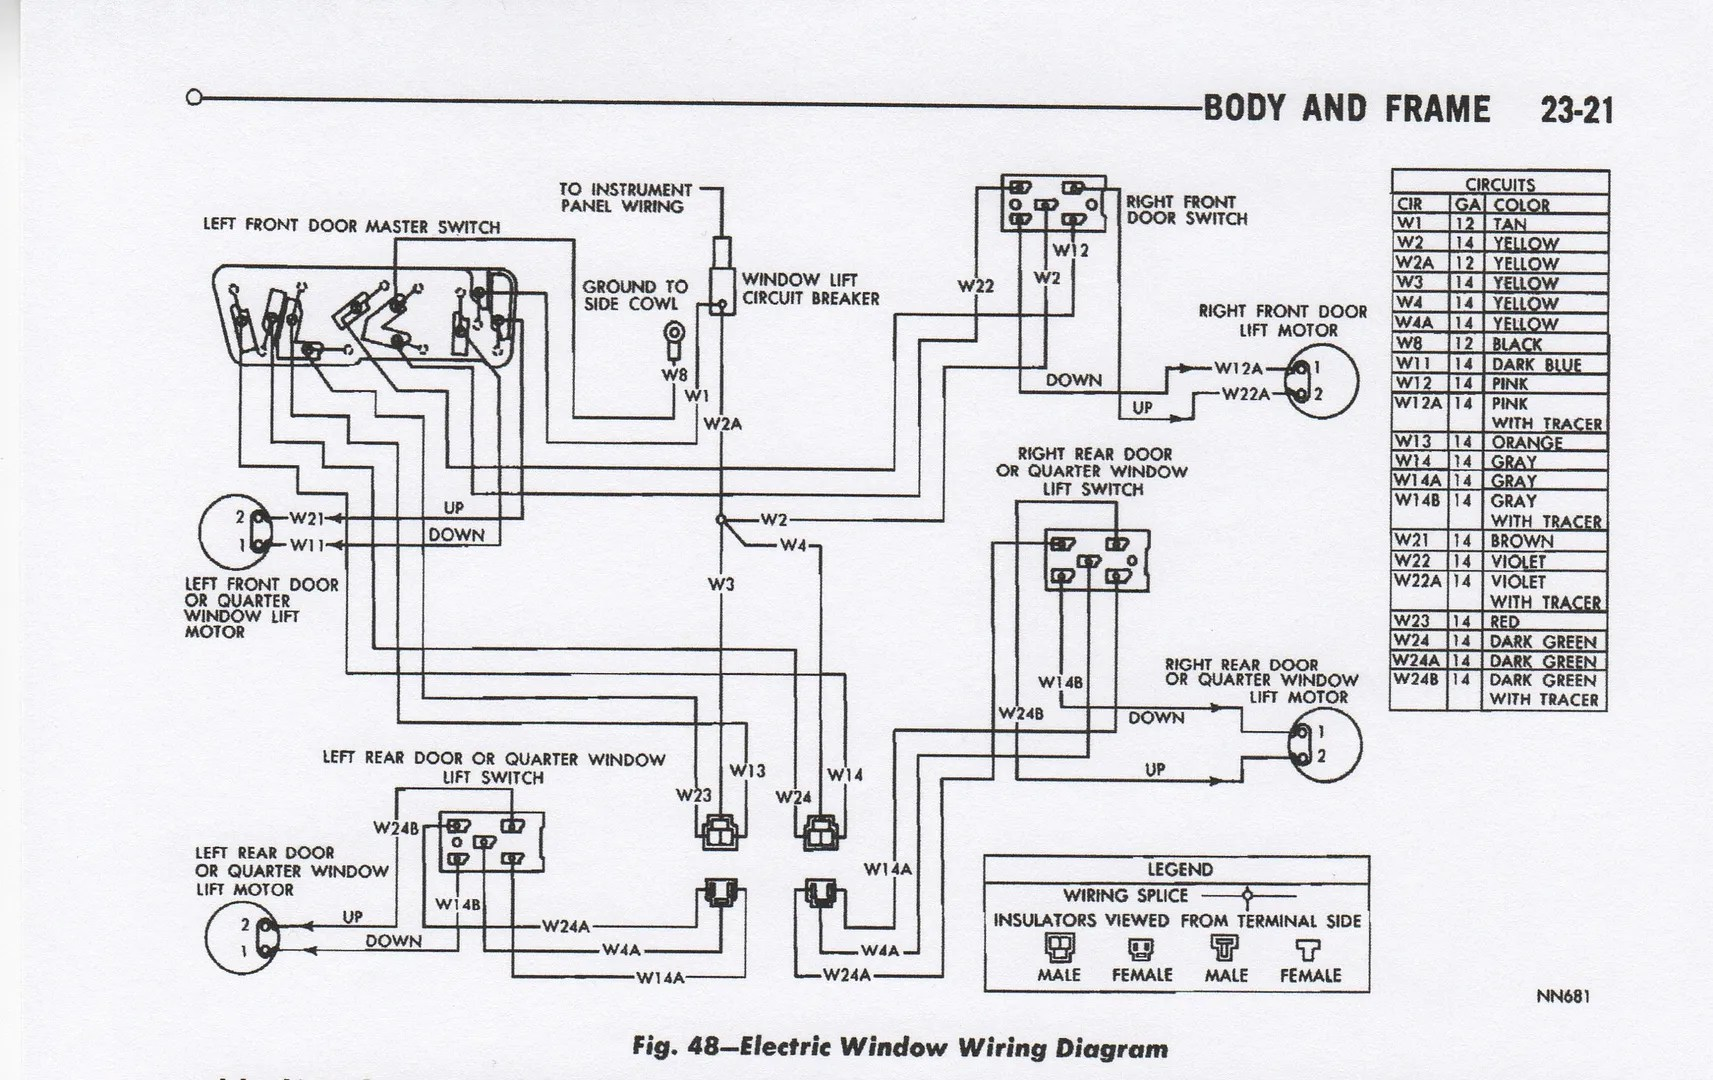 1970 Camaro Cruise Control Wiring Diagram Schematic